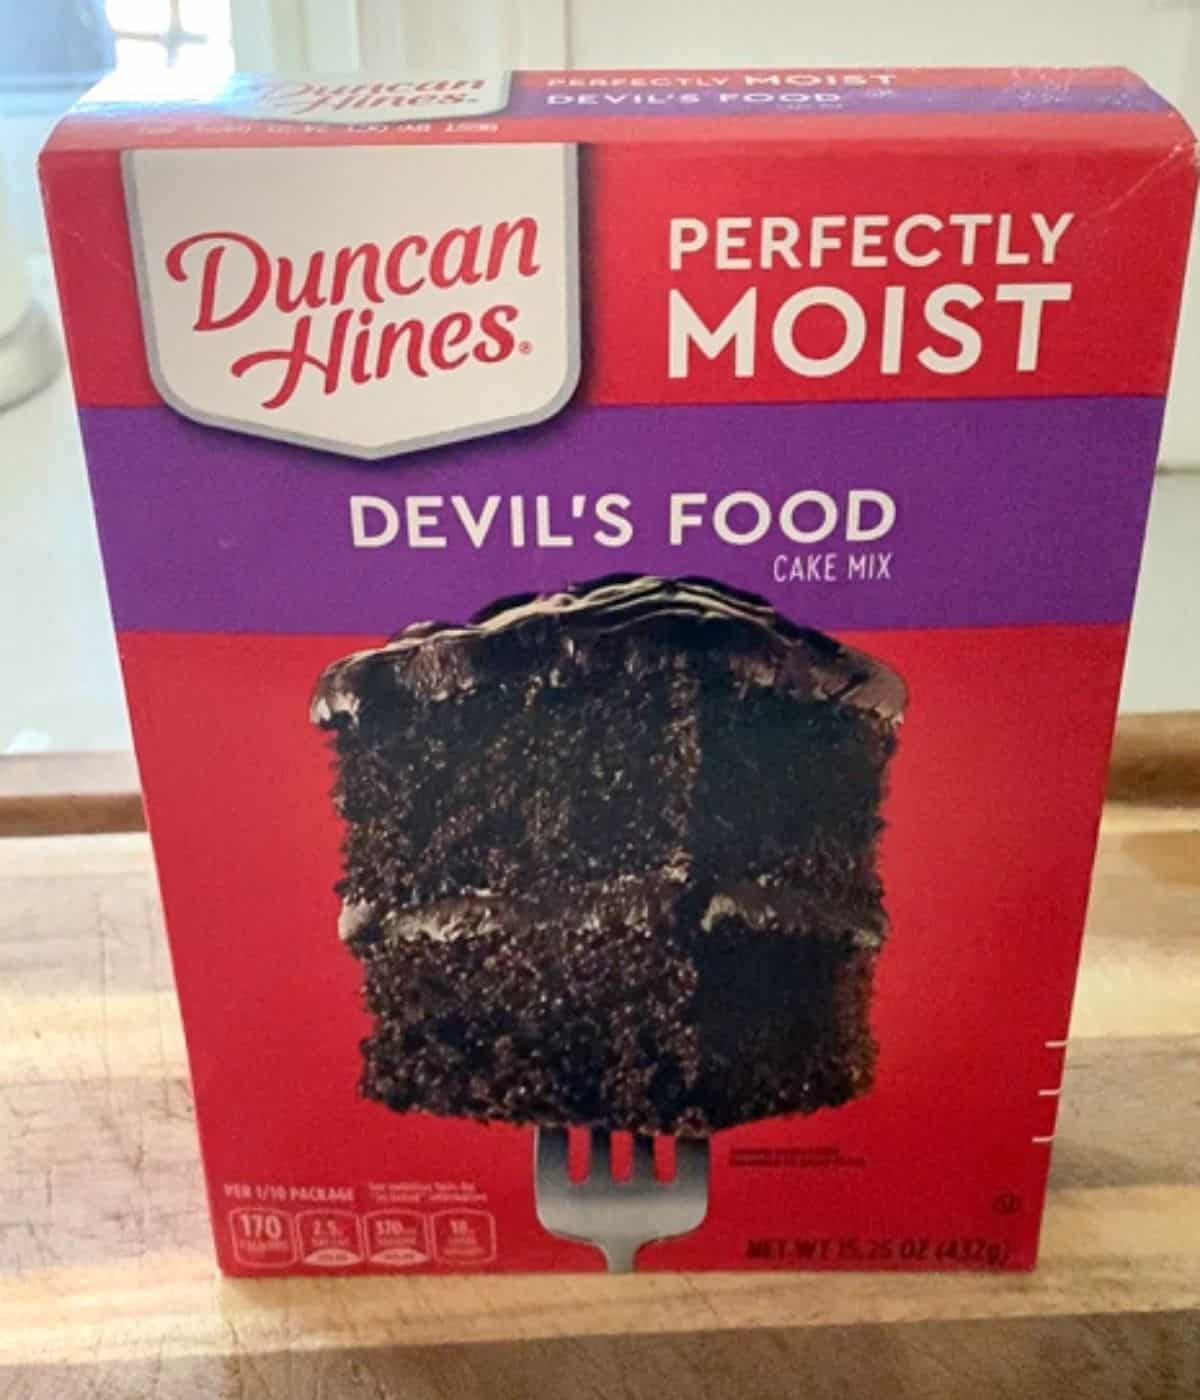 box of duncan hines moist devil's food chocolate cake mix on counter.